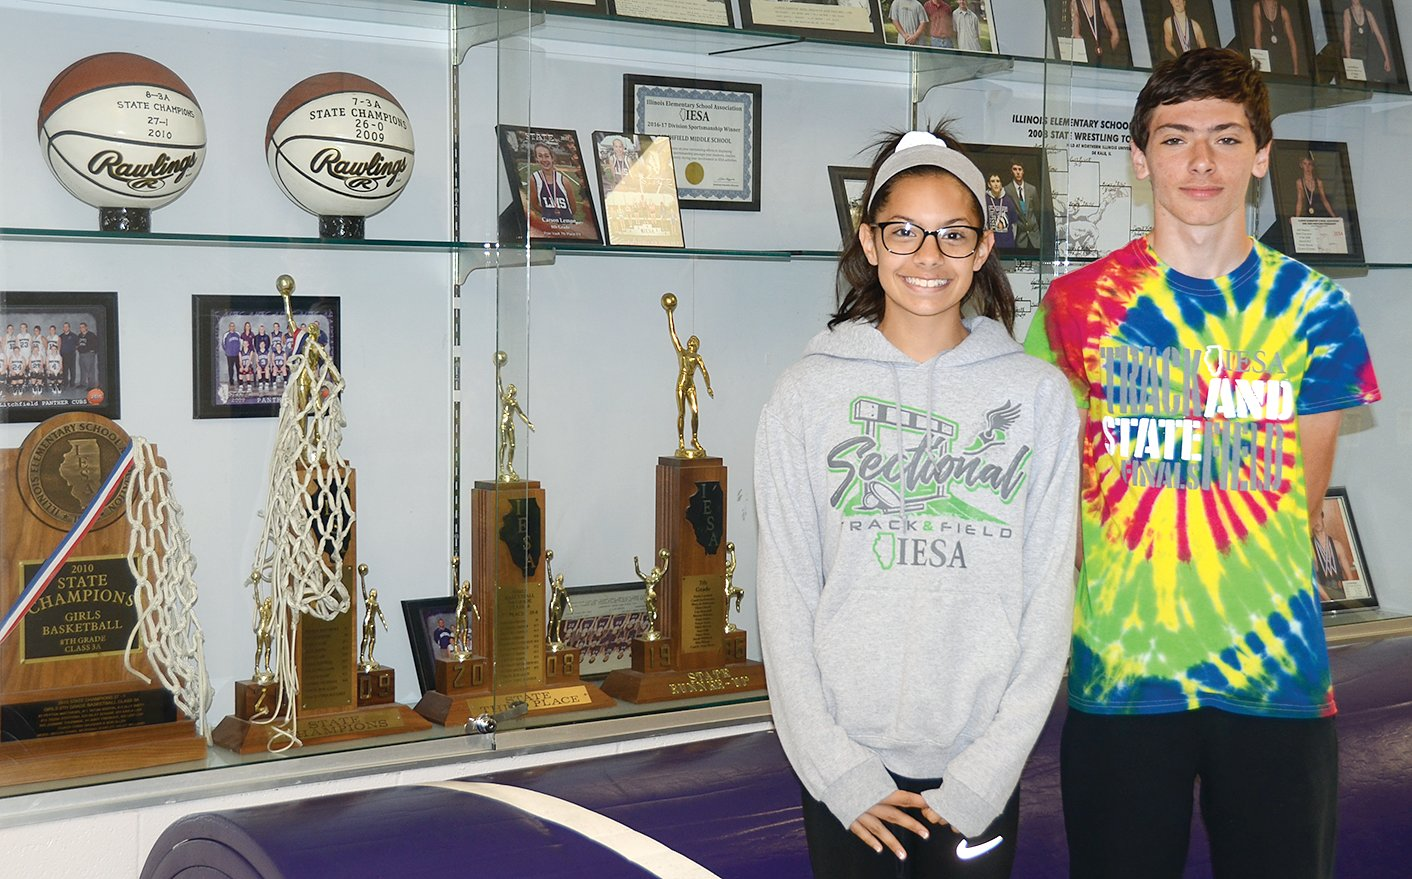 Litchfield Middle School has to make more room in its trophy case after two Panthers brought home medals from the IESA State Track Meet, held in East Peoria on May 17-18. Kendall Stewart placed eighth in the seventh grade girls 400 meters with a time of 1:02, while Ayvin Bunton placed fifth in the seventh grade boys 800 with a time of 2:14.